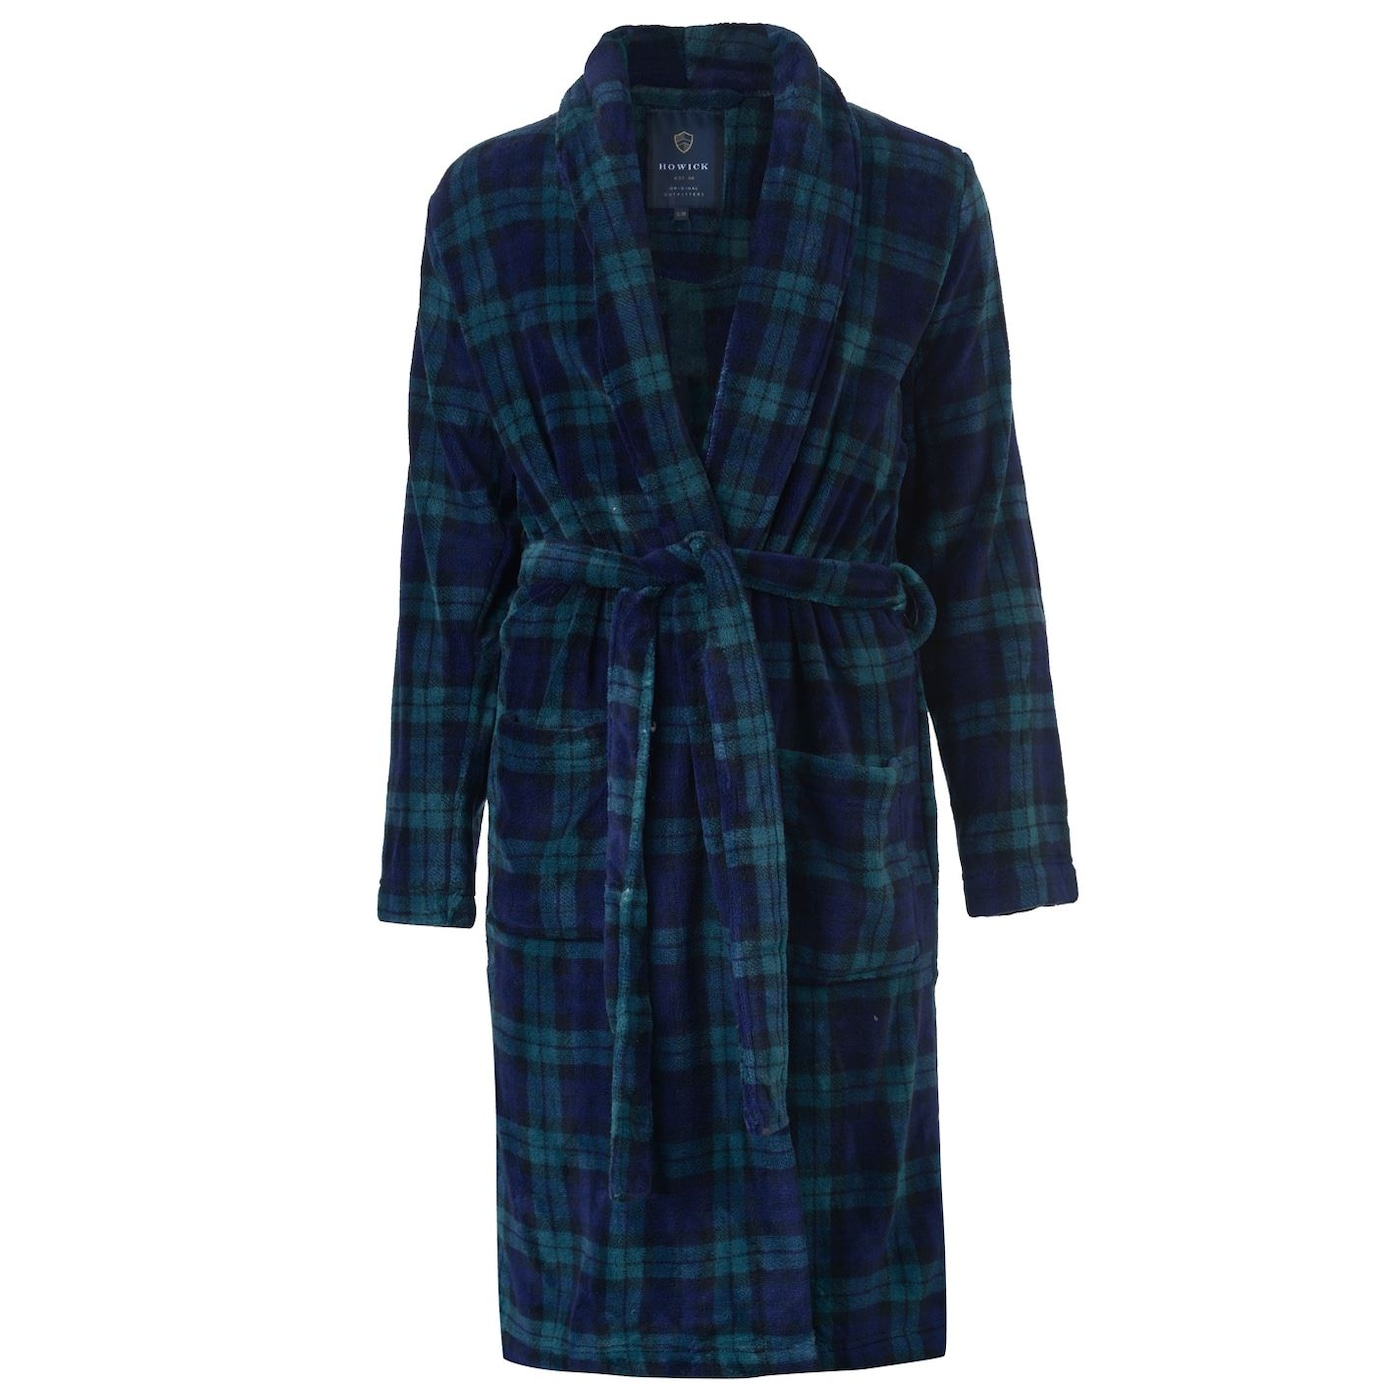 Howick Blackwatch Check Fleece Dressing Gown